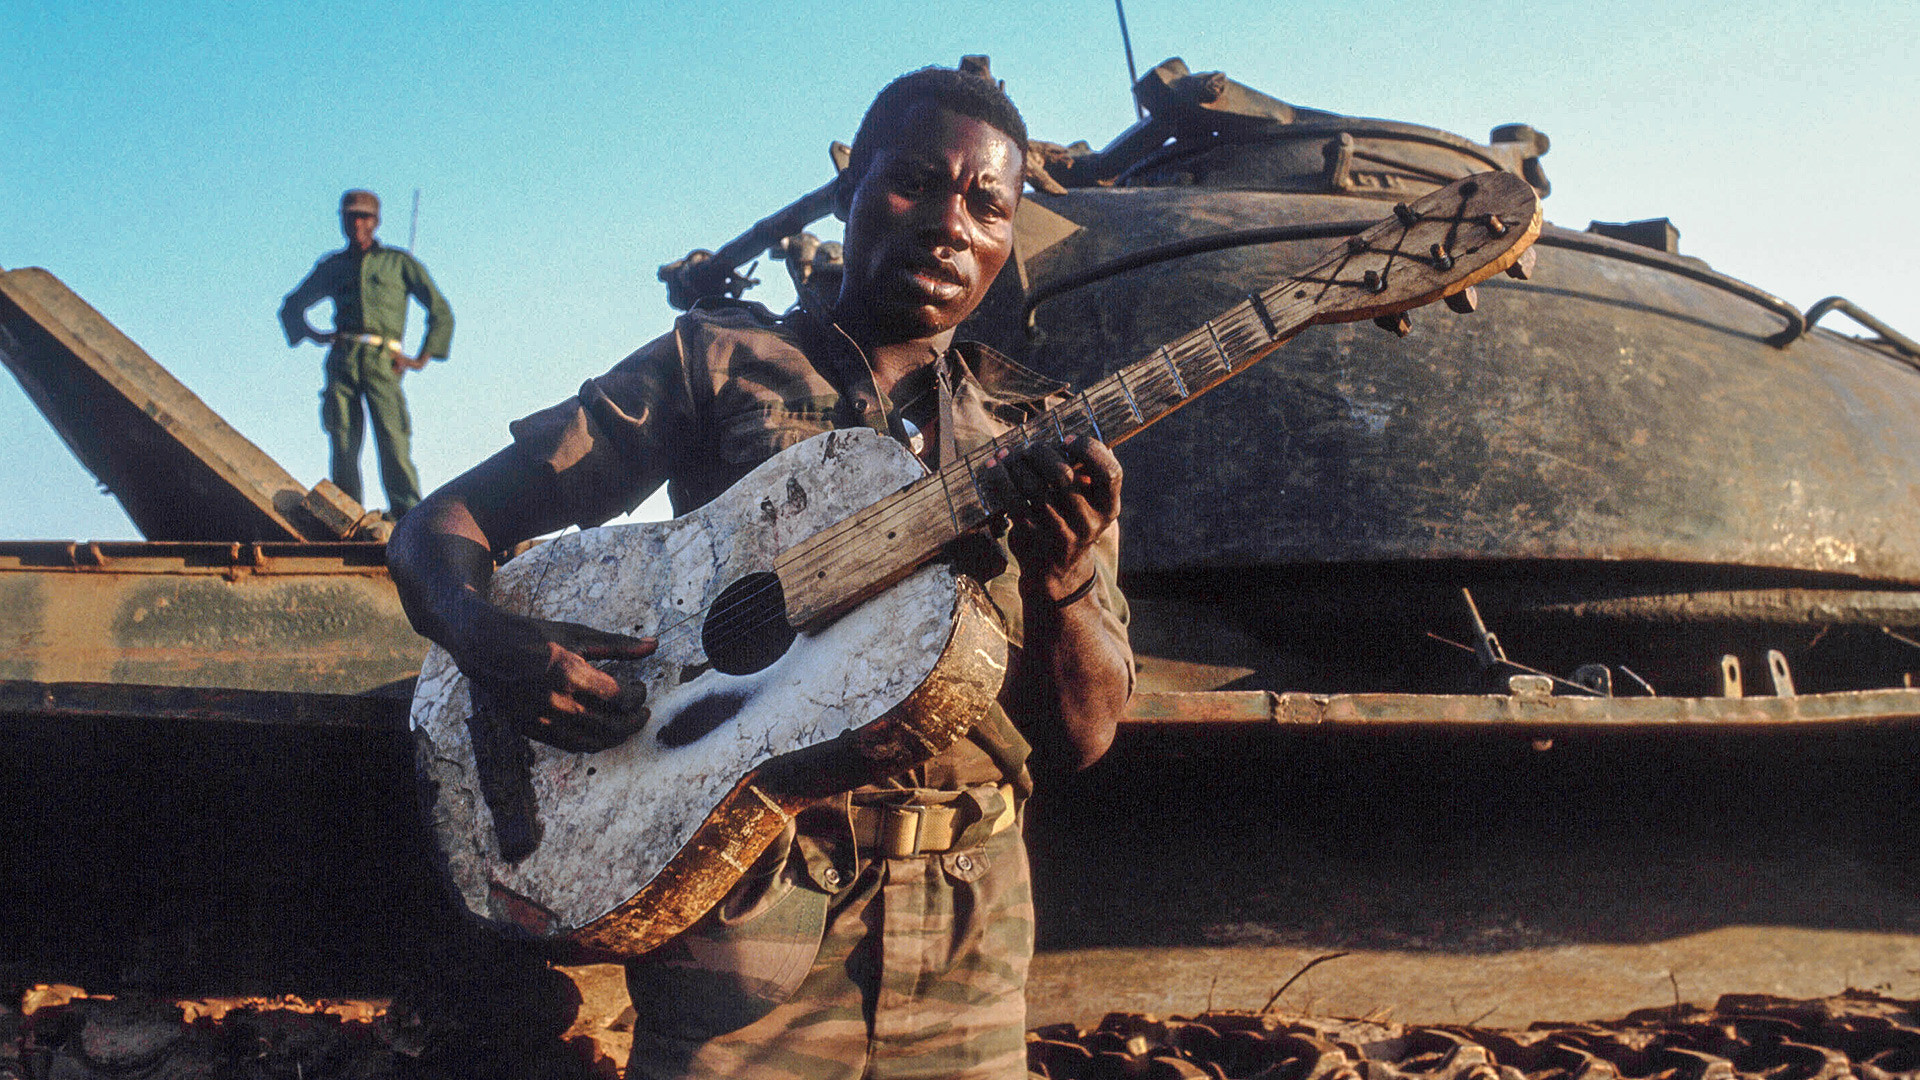 An African soldier against the background of a Soviet T-34 tank.